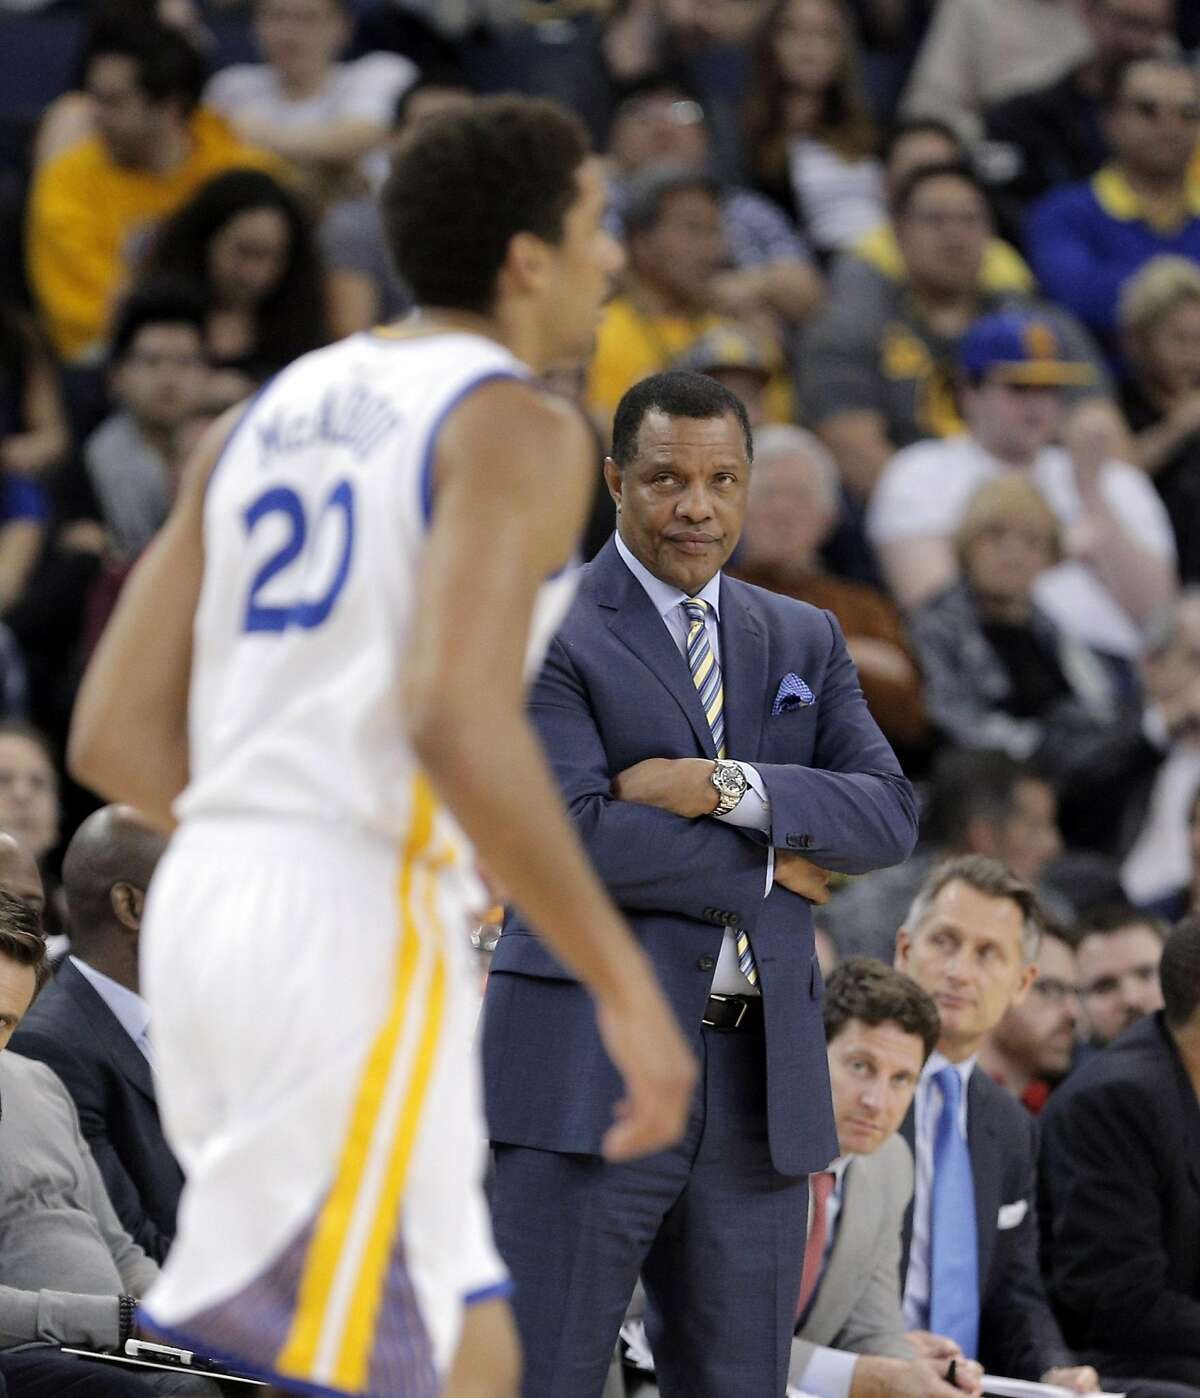 Pelicans head coach Alvin Gentry watches James Michael McAdoo (20) dribble up court in the second half as the Golden State Warriors played the New Orleans Pelicans at Oracle Arena in Oakland, Calif., on Monday, March 14, 2016.